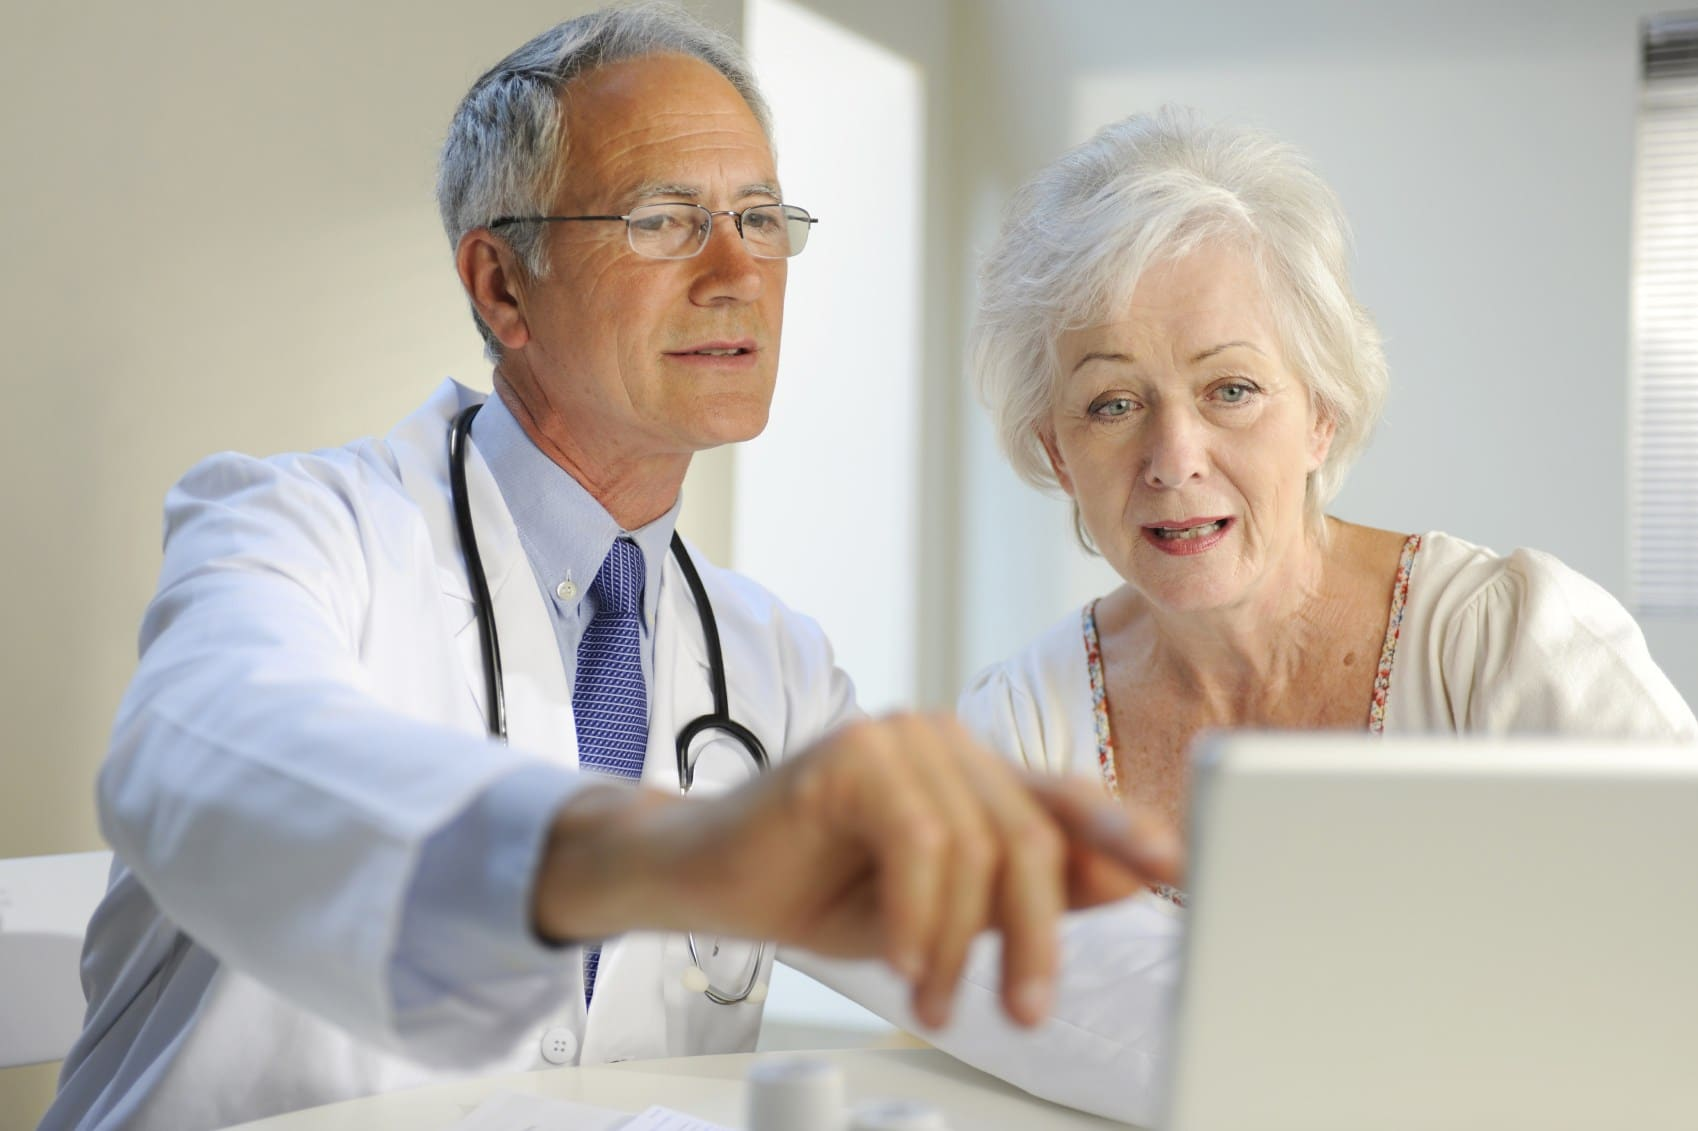 Doctor_Senior_patient_iStock_227504Medium